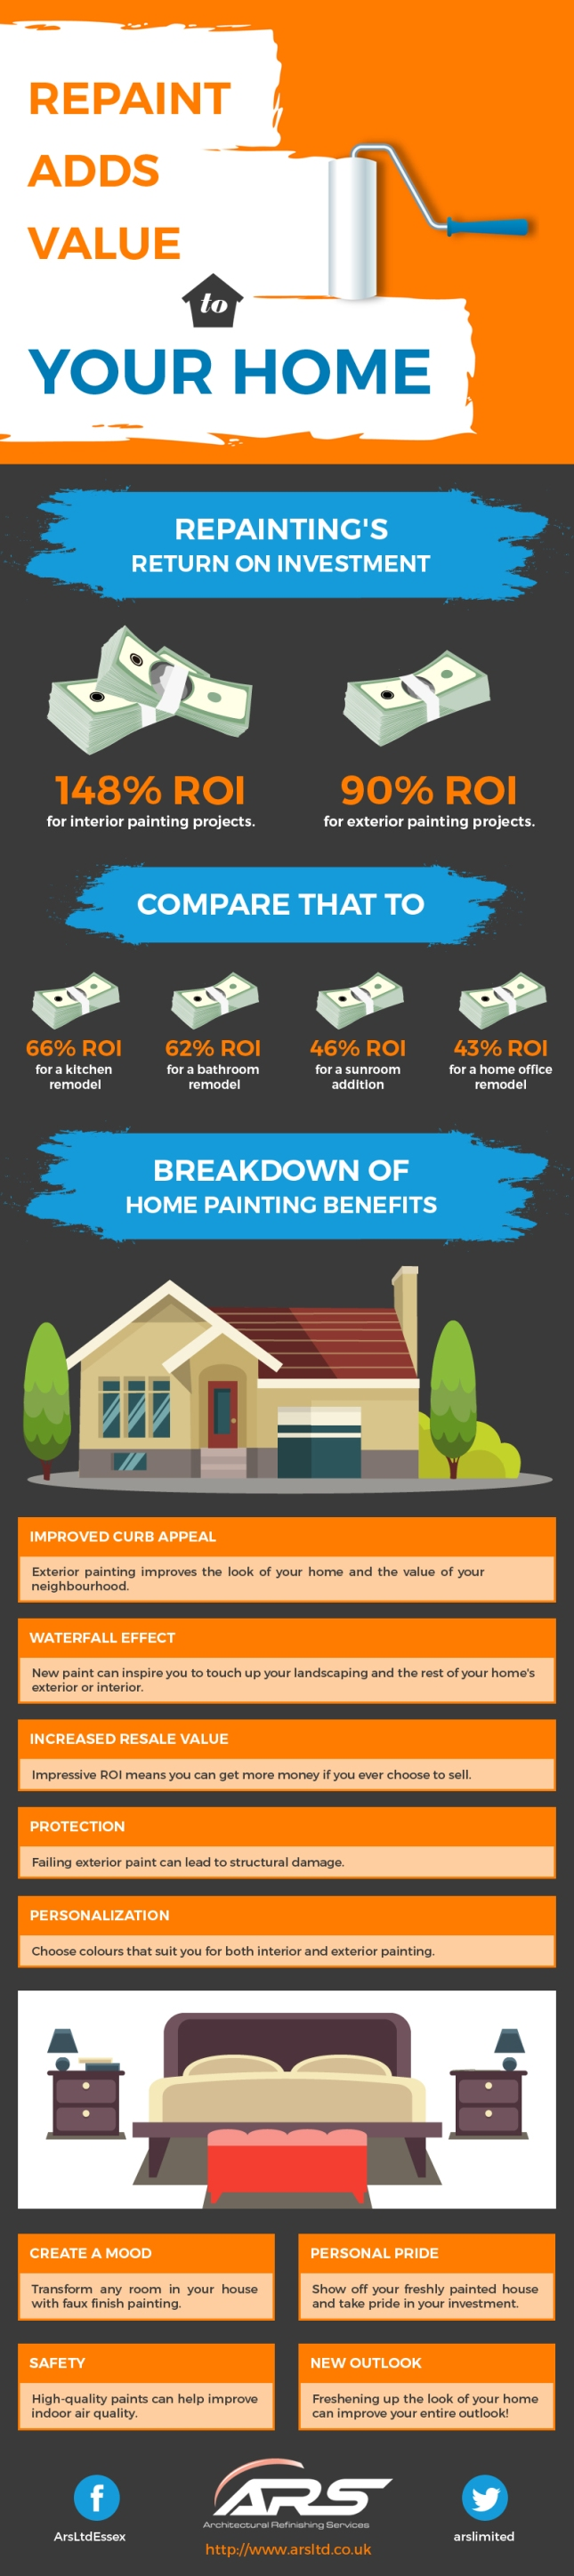 Repaint Adds Value to Your Home